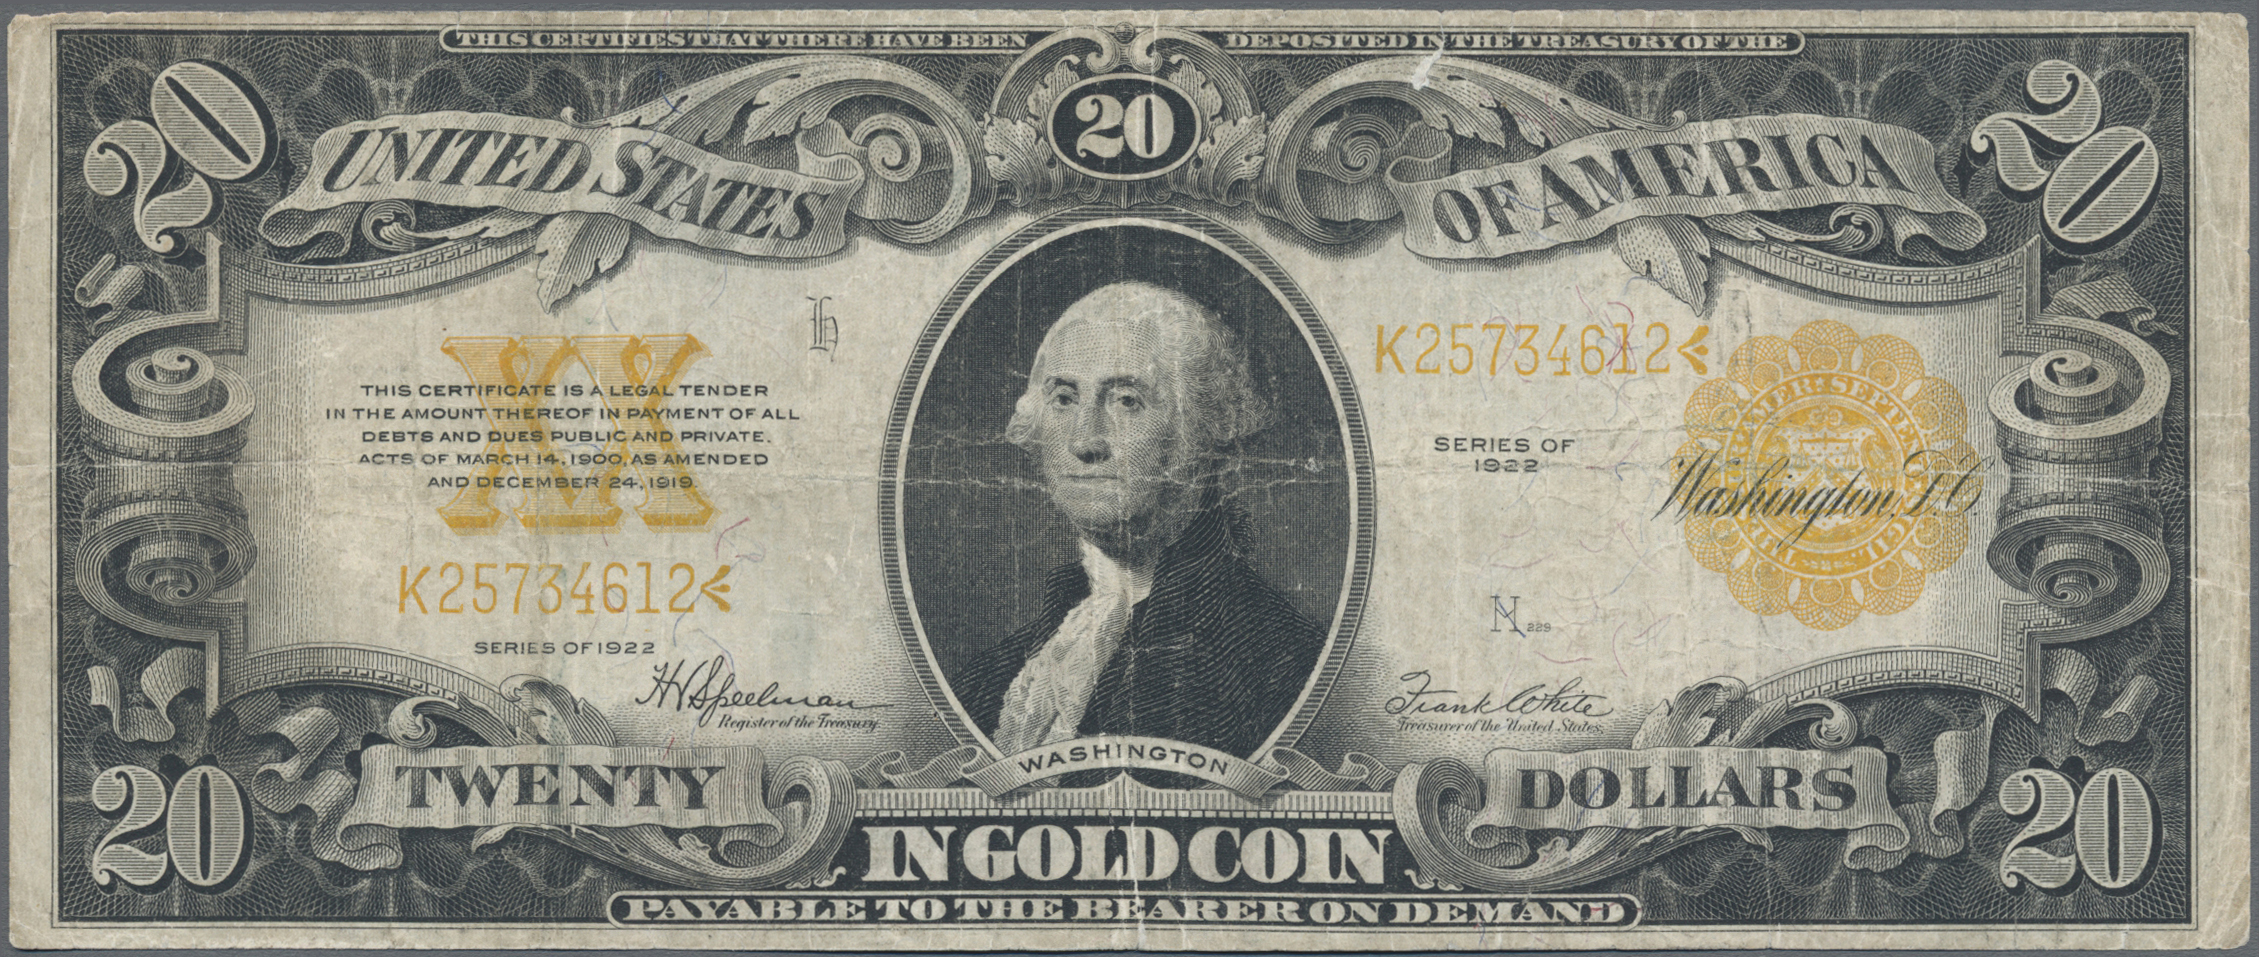 Lot 00904 - United States of America | Banknoten  -  Auktionshaus Christoph Gärtner GmbH & Co. KG Sale #48 The Banknotes